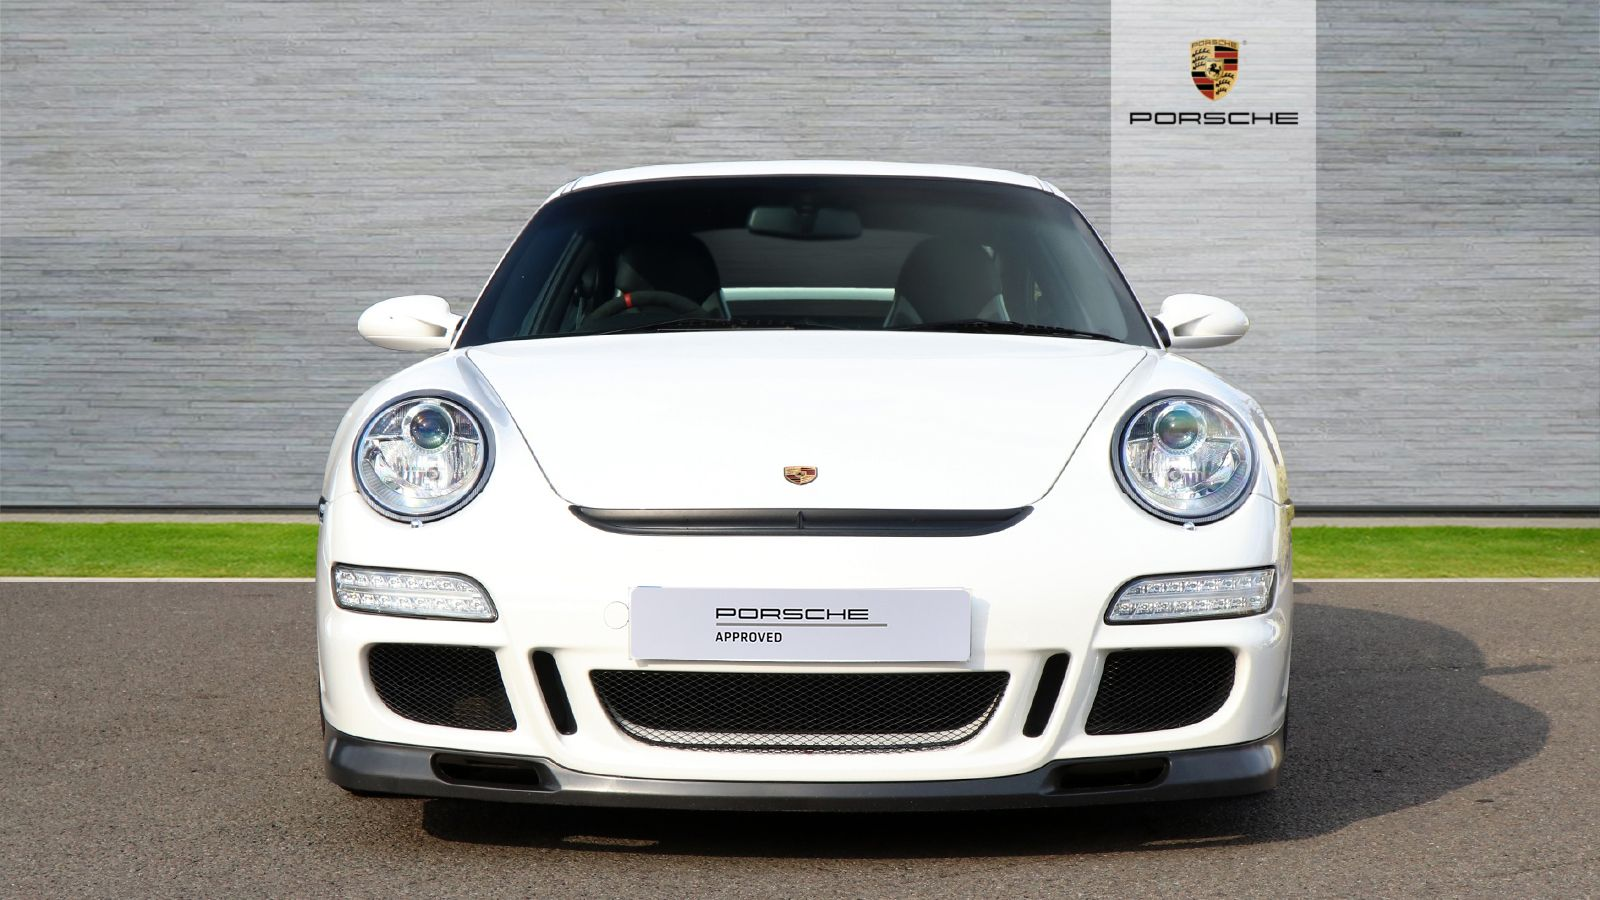 Porsche Approved with Grilles Mid Sussex a 1600x900.jpg